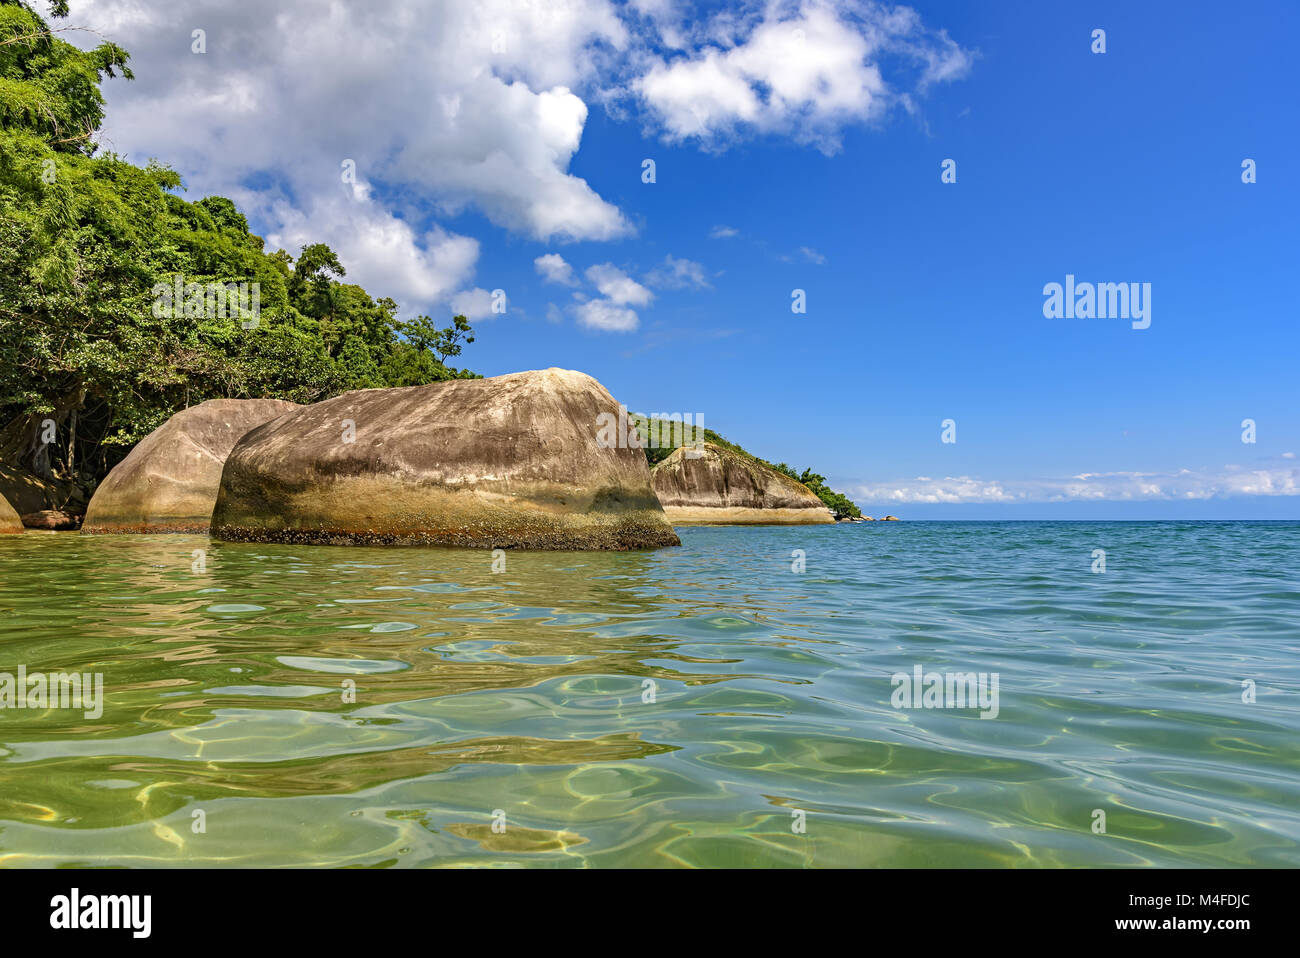 Deserted and unspoilt beach with forest - Stock Image